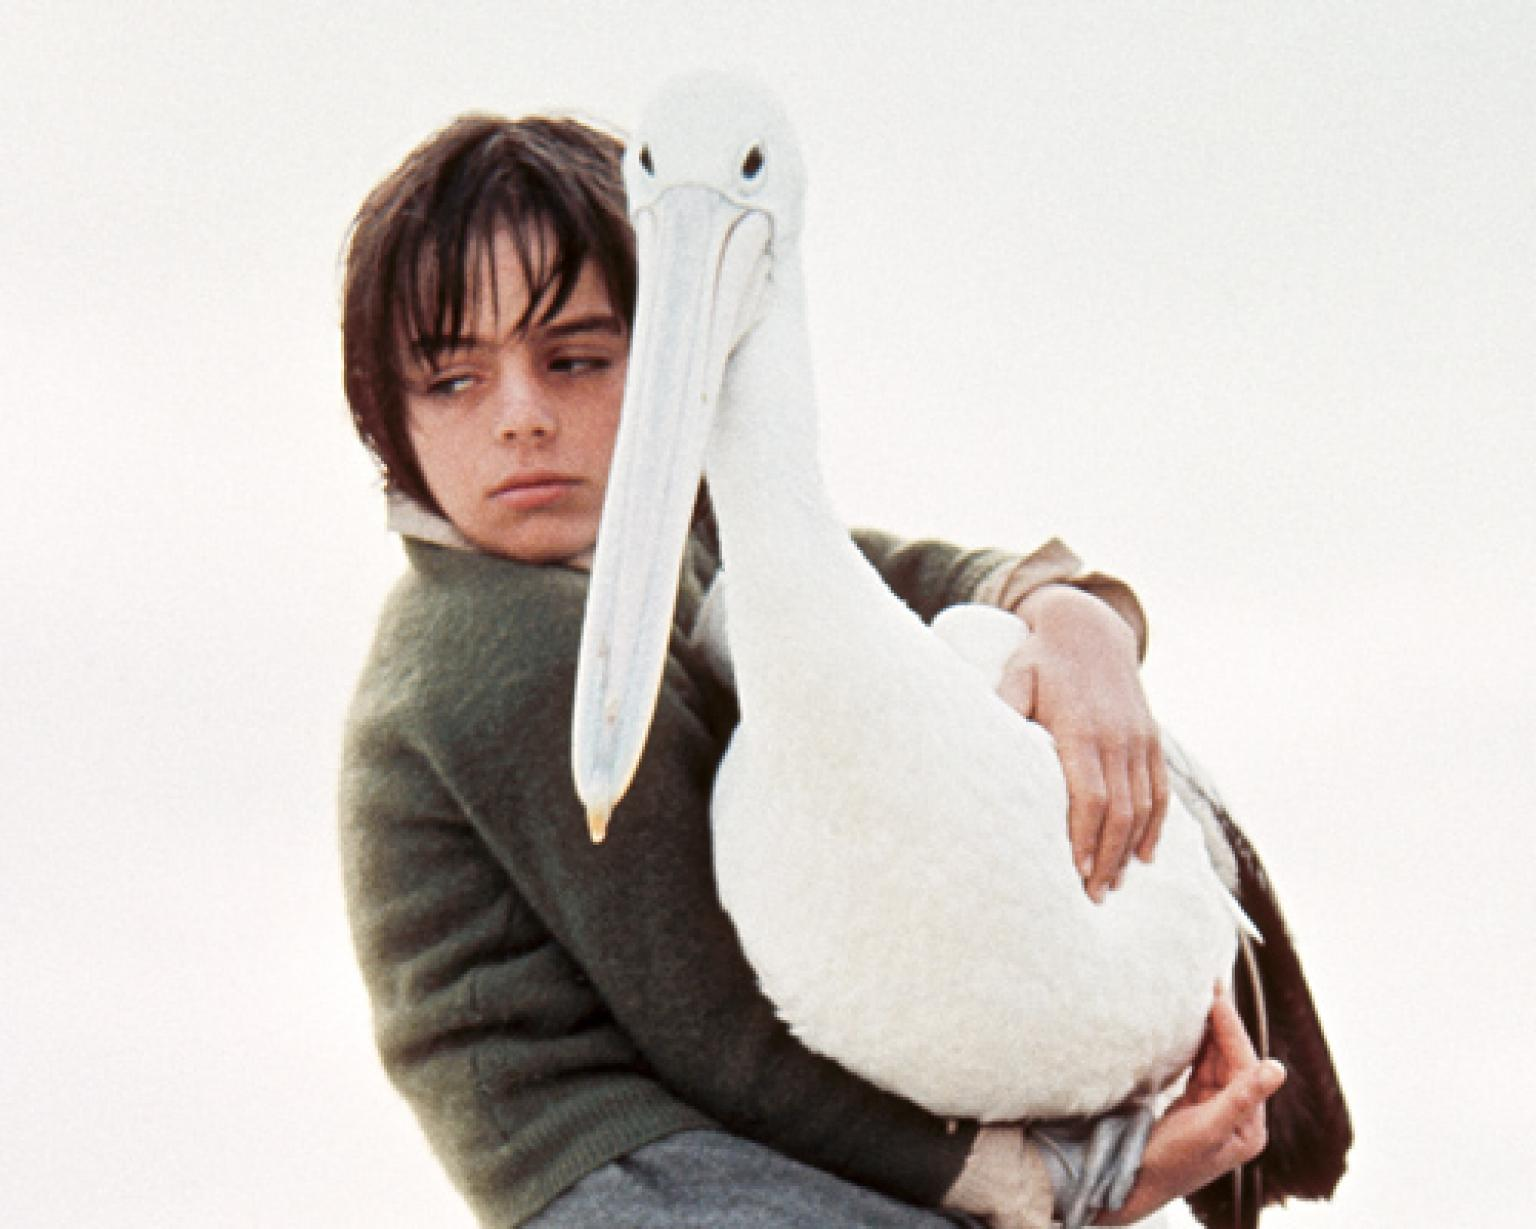 Greg Rowe as Storm Boy holds Mr Percival the pelican as they sit on a boat together. Greg looks very sad.